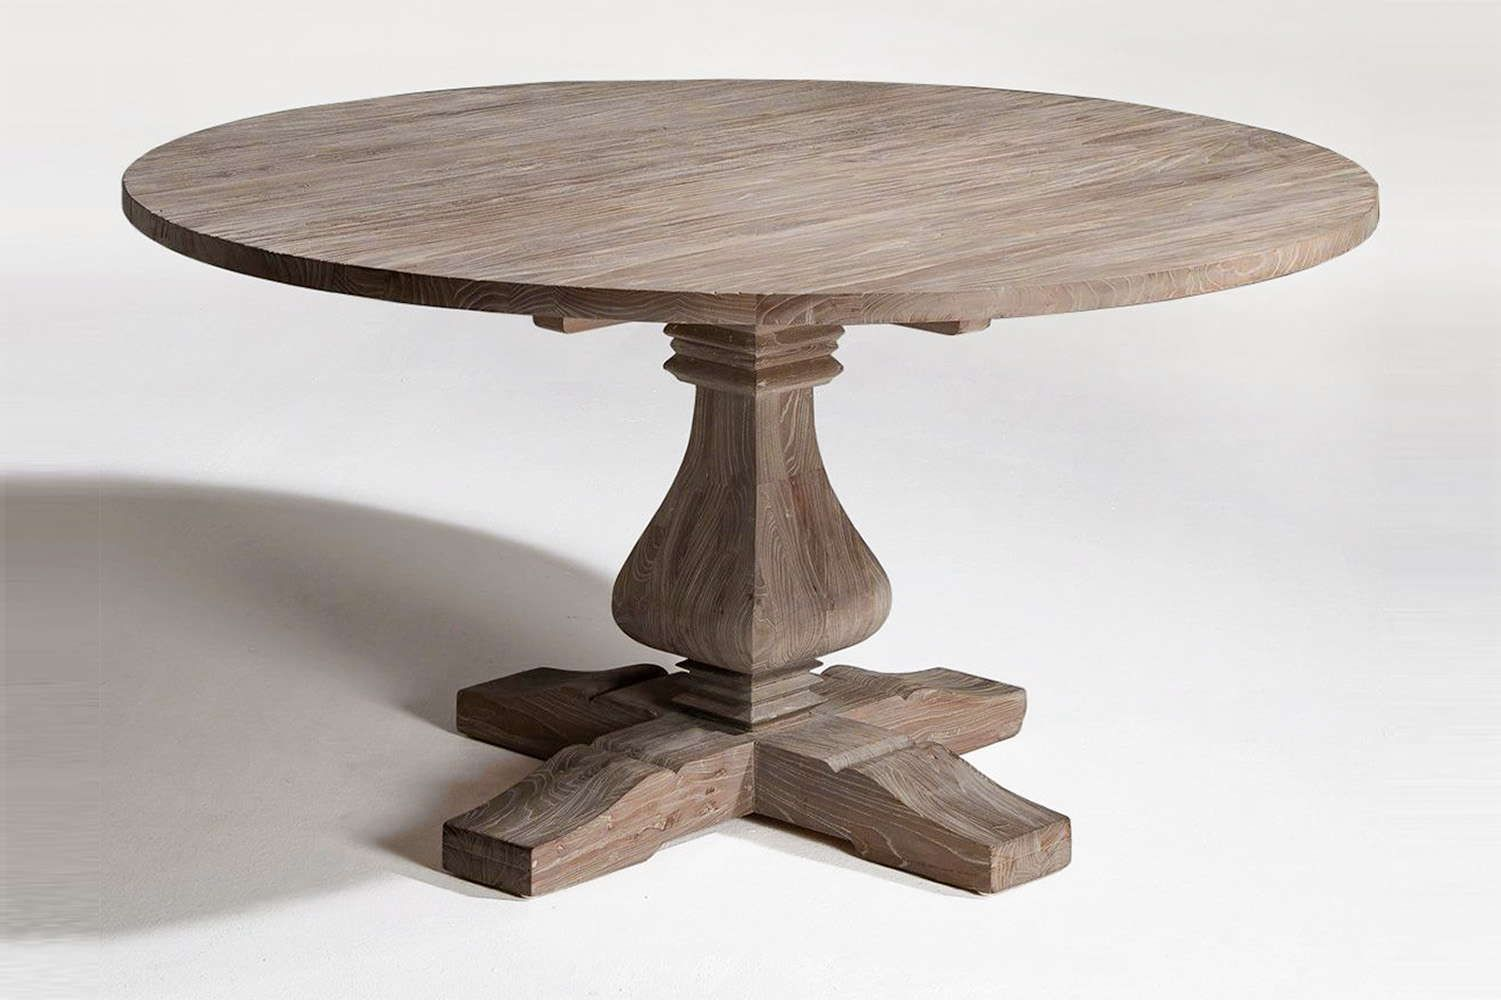 Customize Solid Wood Types Adjust The Size Change The Features And Add Distressed Wood Pedestal Roun Dining Table Round Wood Dining Table Round Dining Table